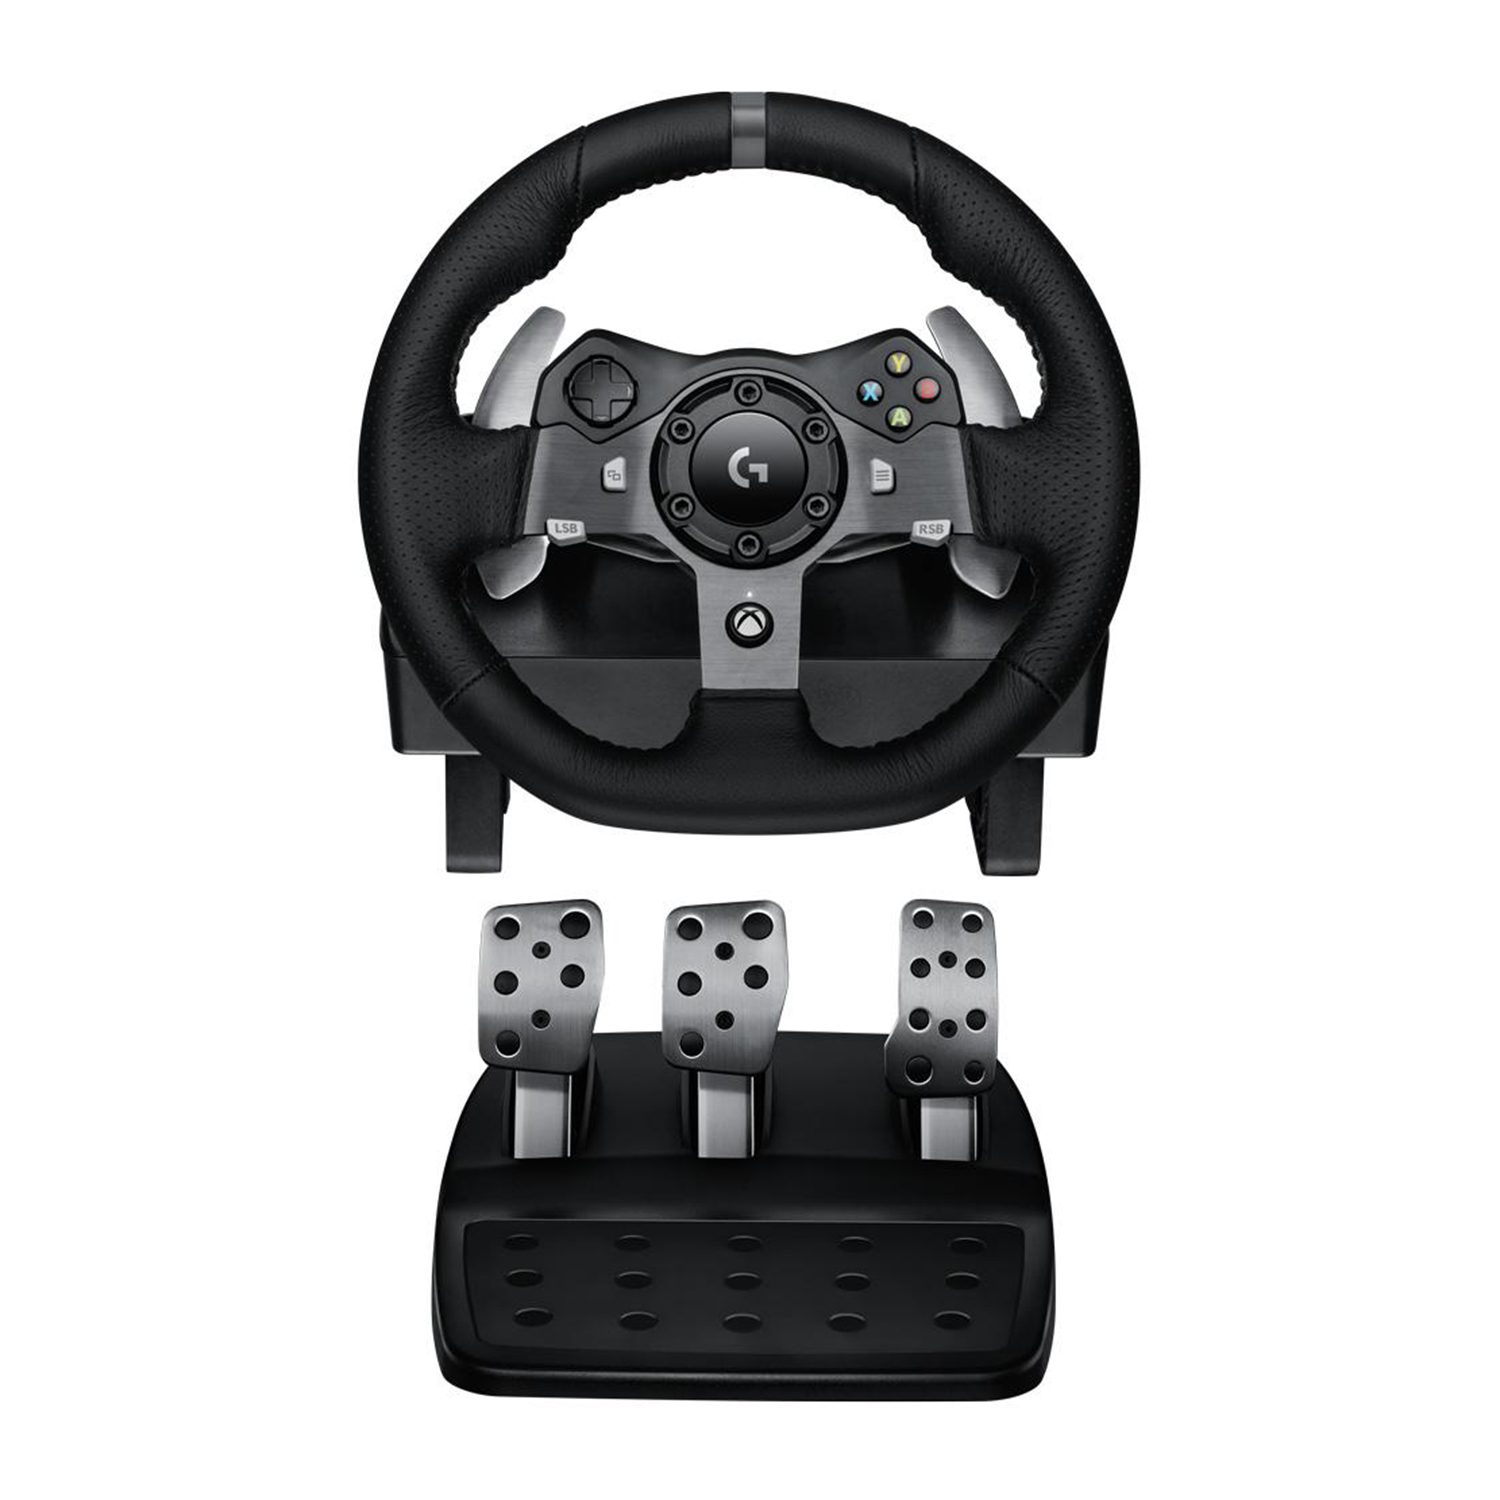 75594b8d187 Details about Logitech G920 Driving Force Racing Wheel Dual Motor Force  Feedback - Xbox and PC